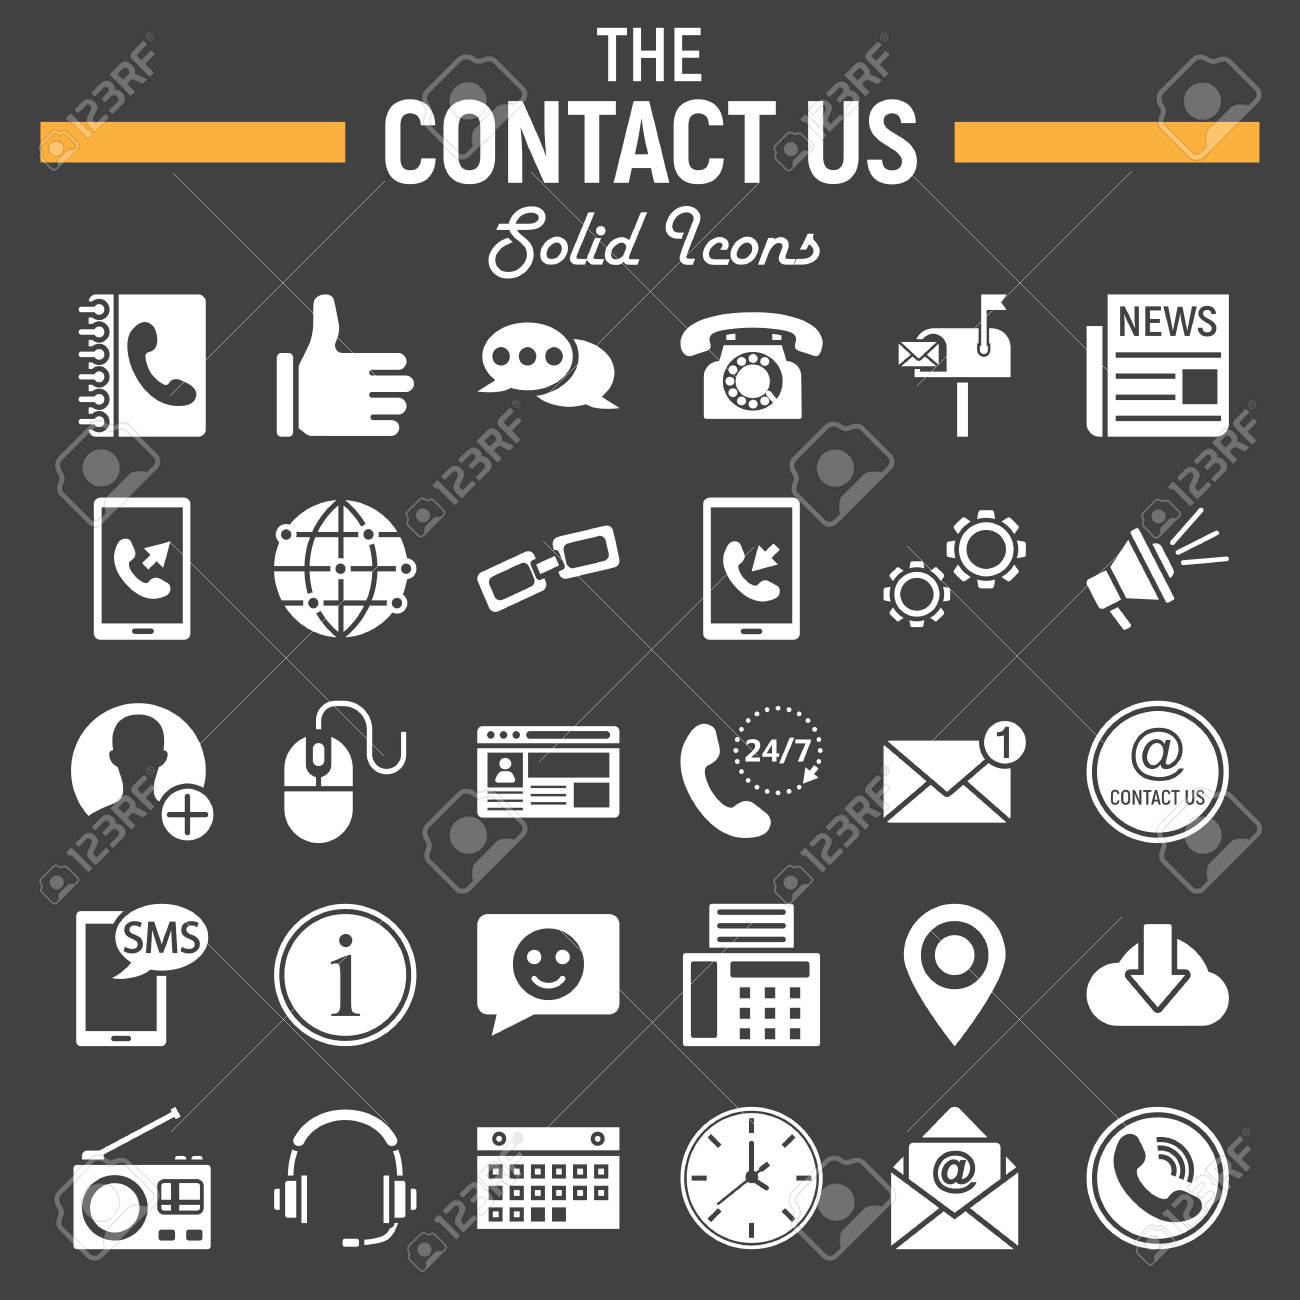 Contact Us Solid Icon Set Web Button Symbols Collection Mobile